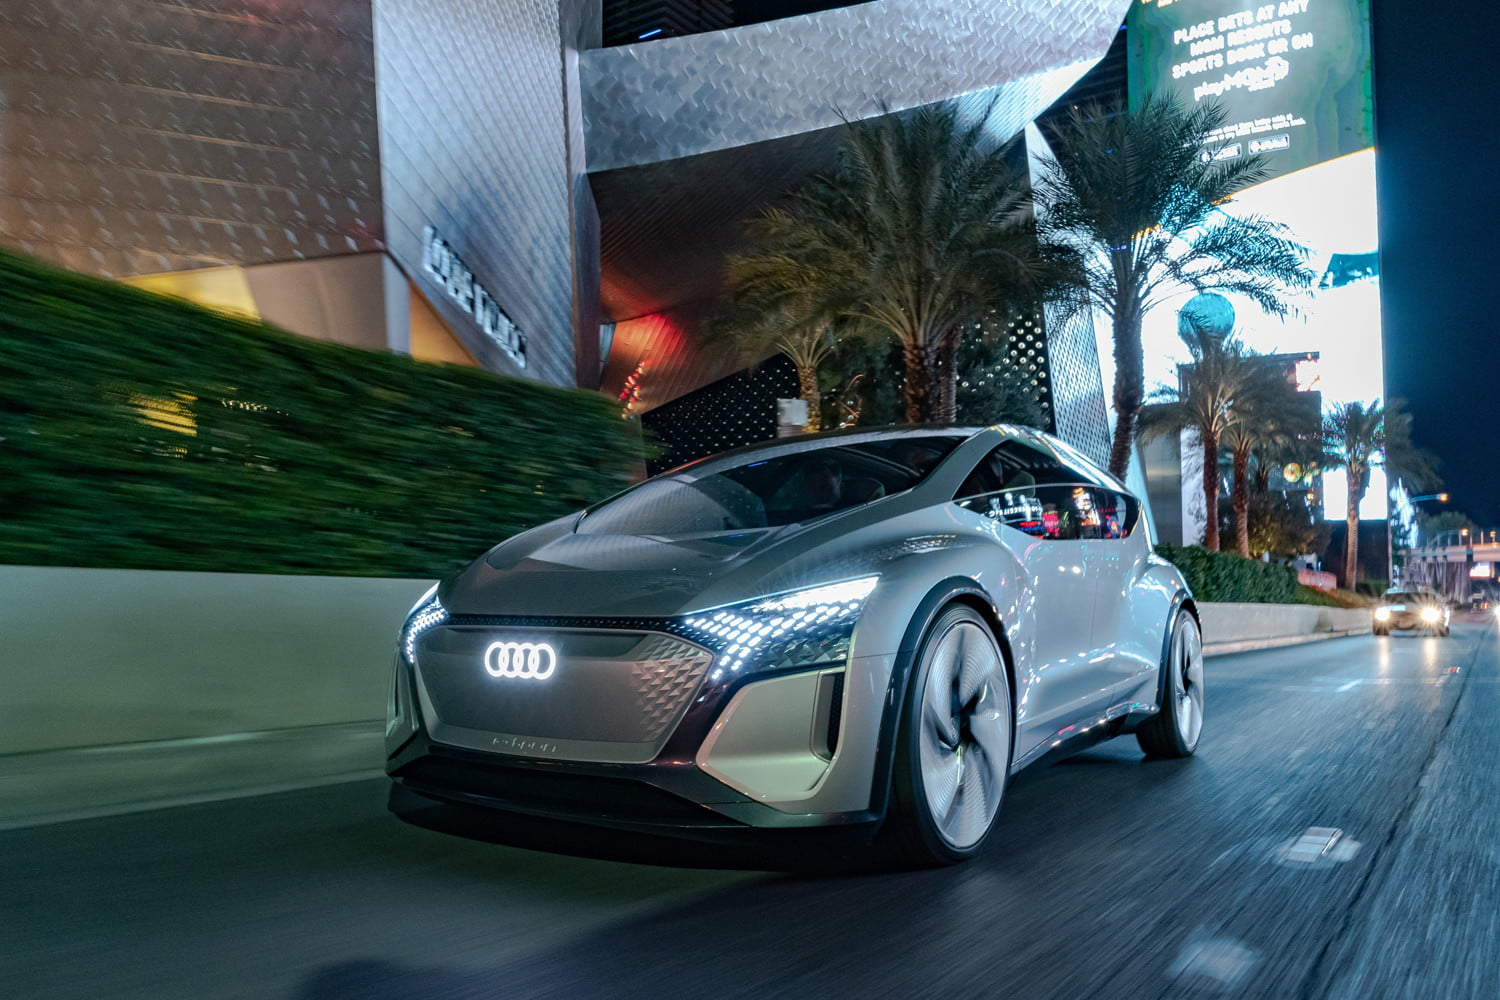 Audi is leveraging technology to turn your car into a third living space